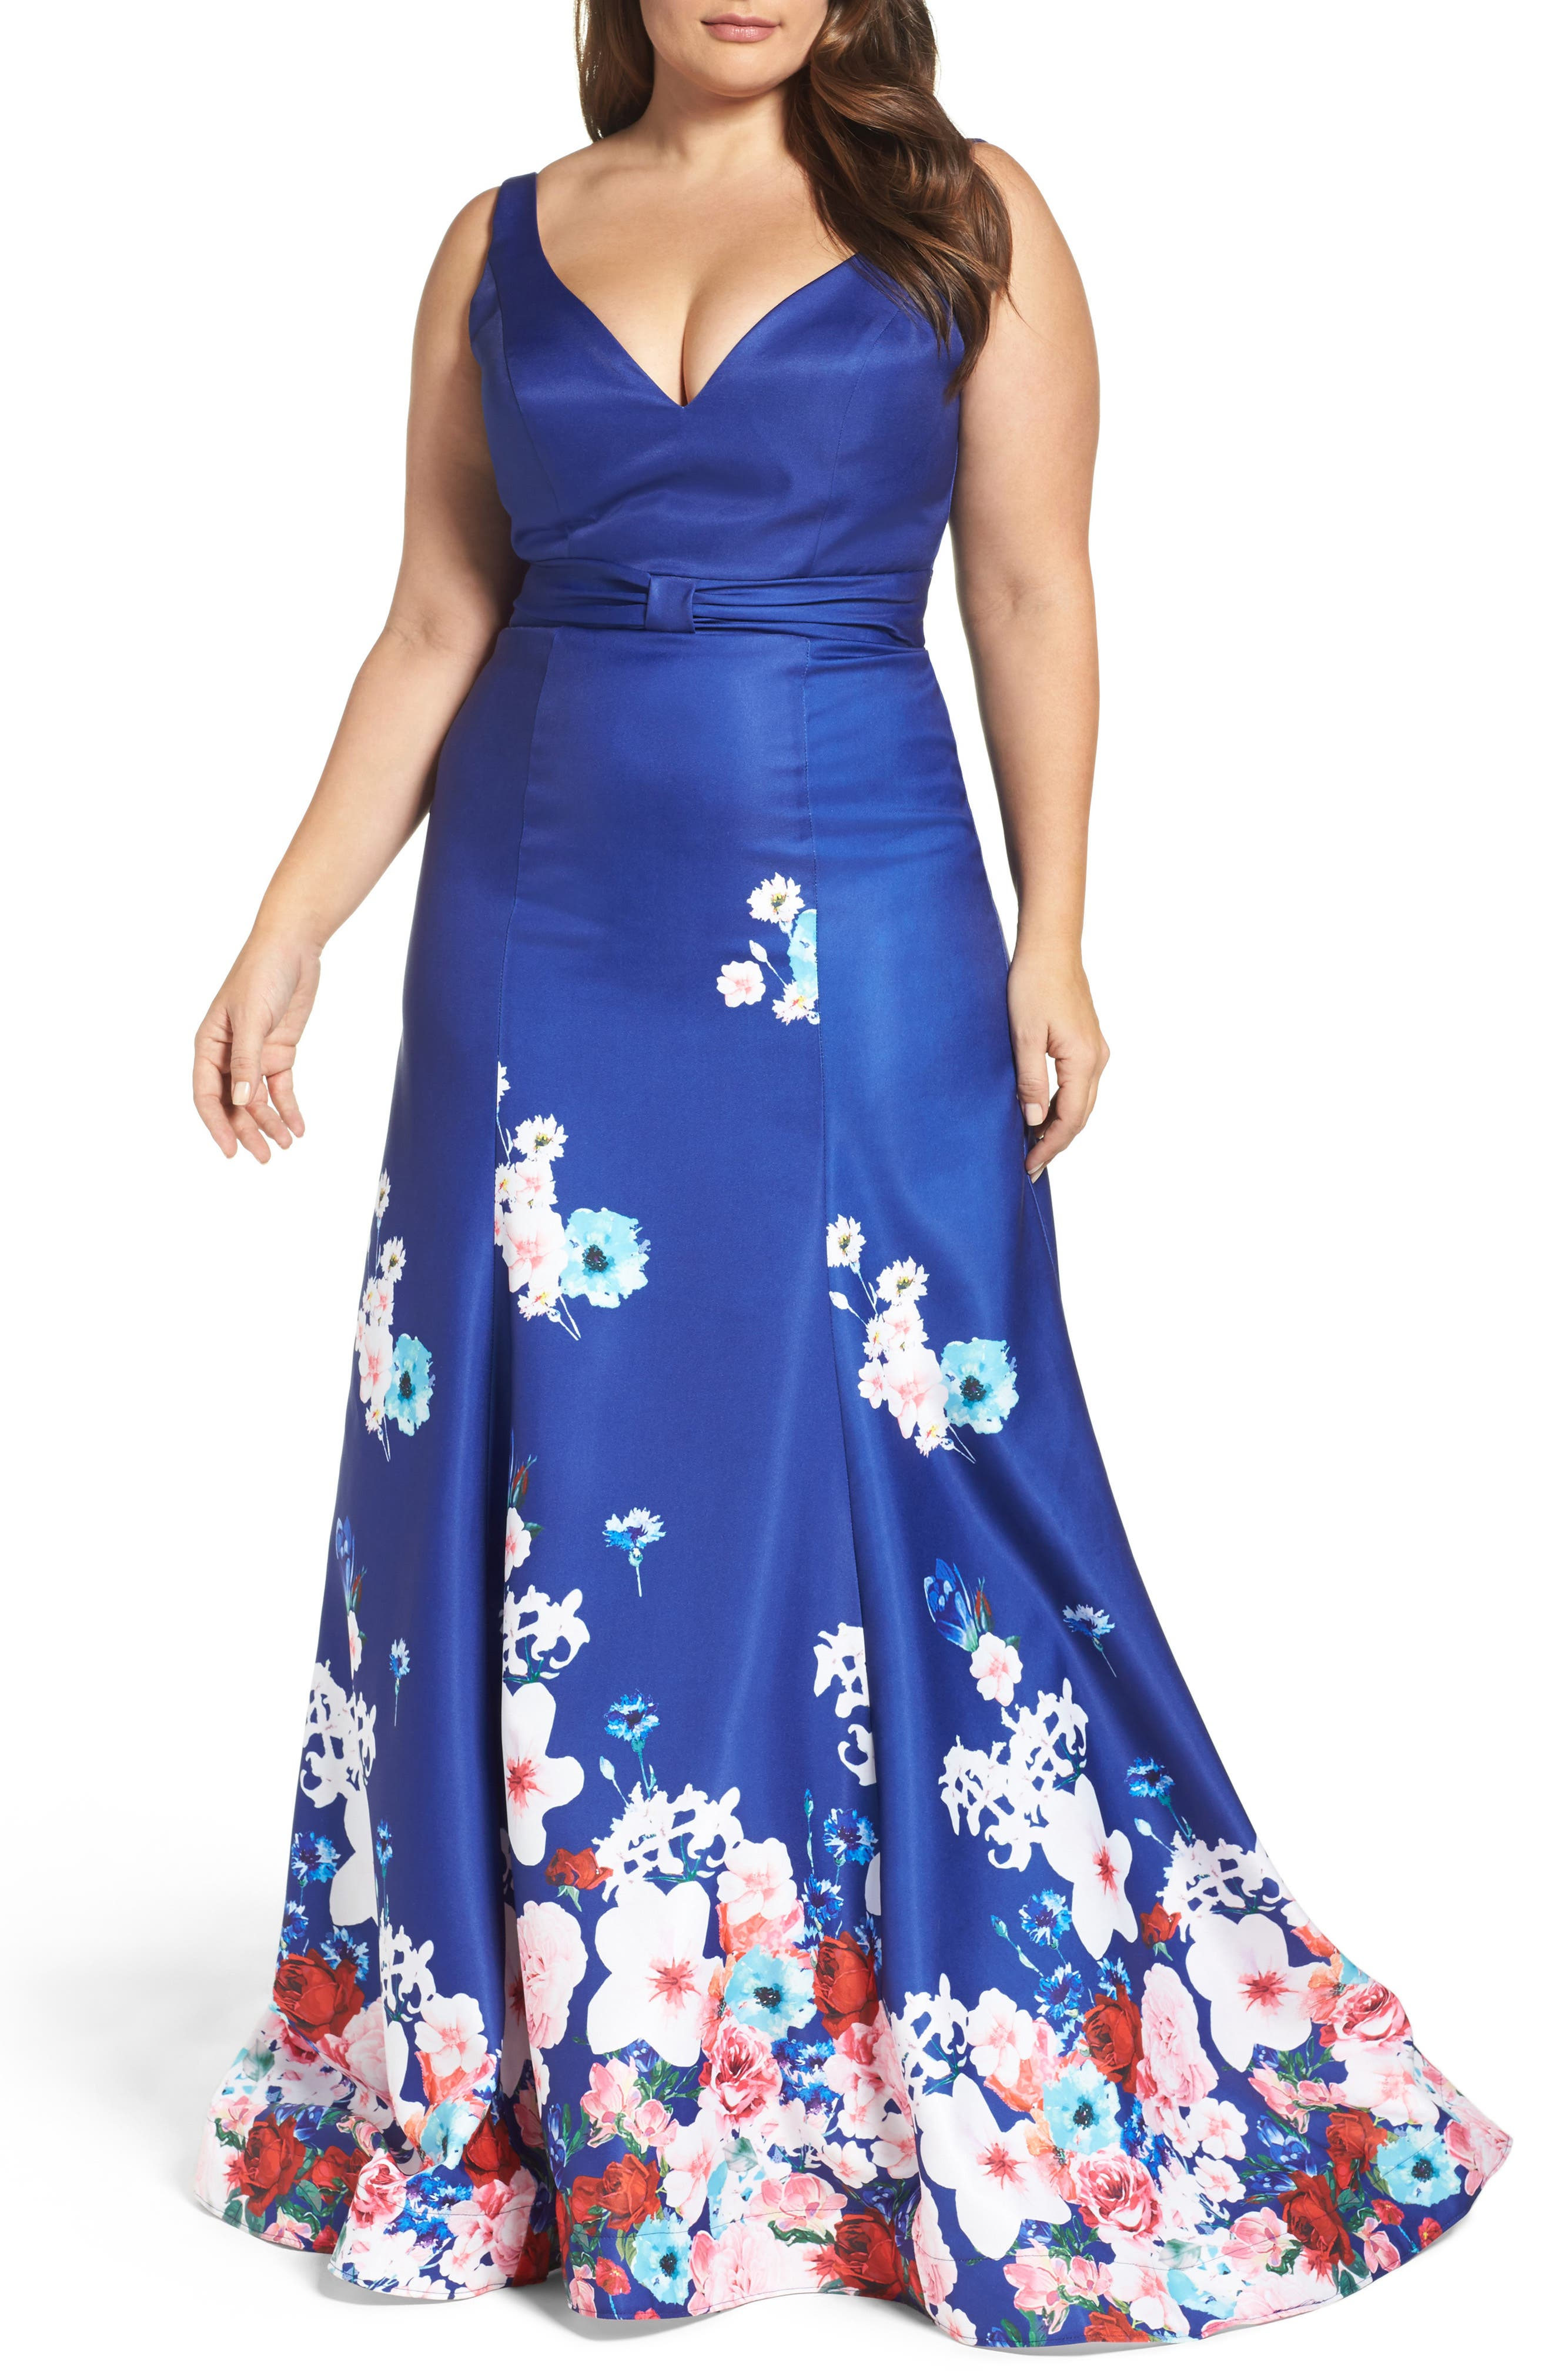 Alternate Image 1 Selected - Mac Duggal Floral A-Line Ballgown (Plus Size)